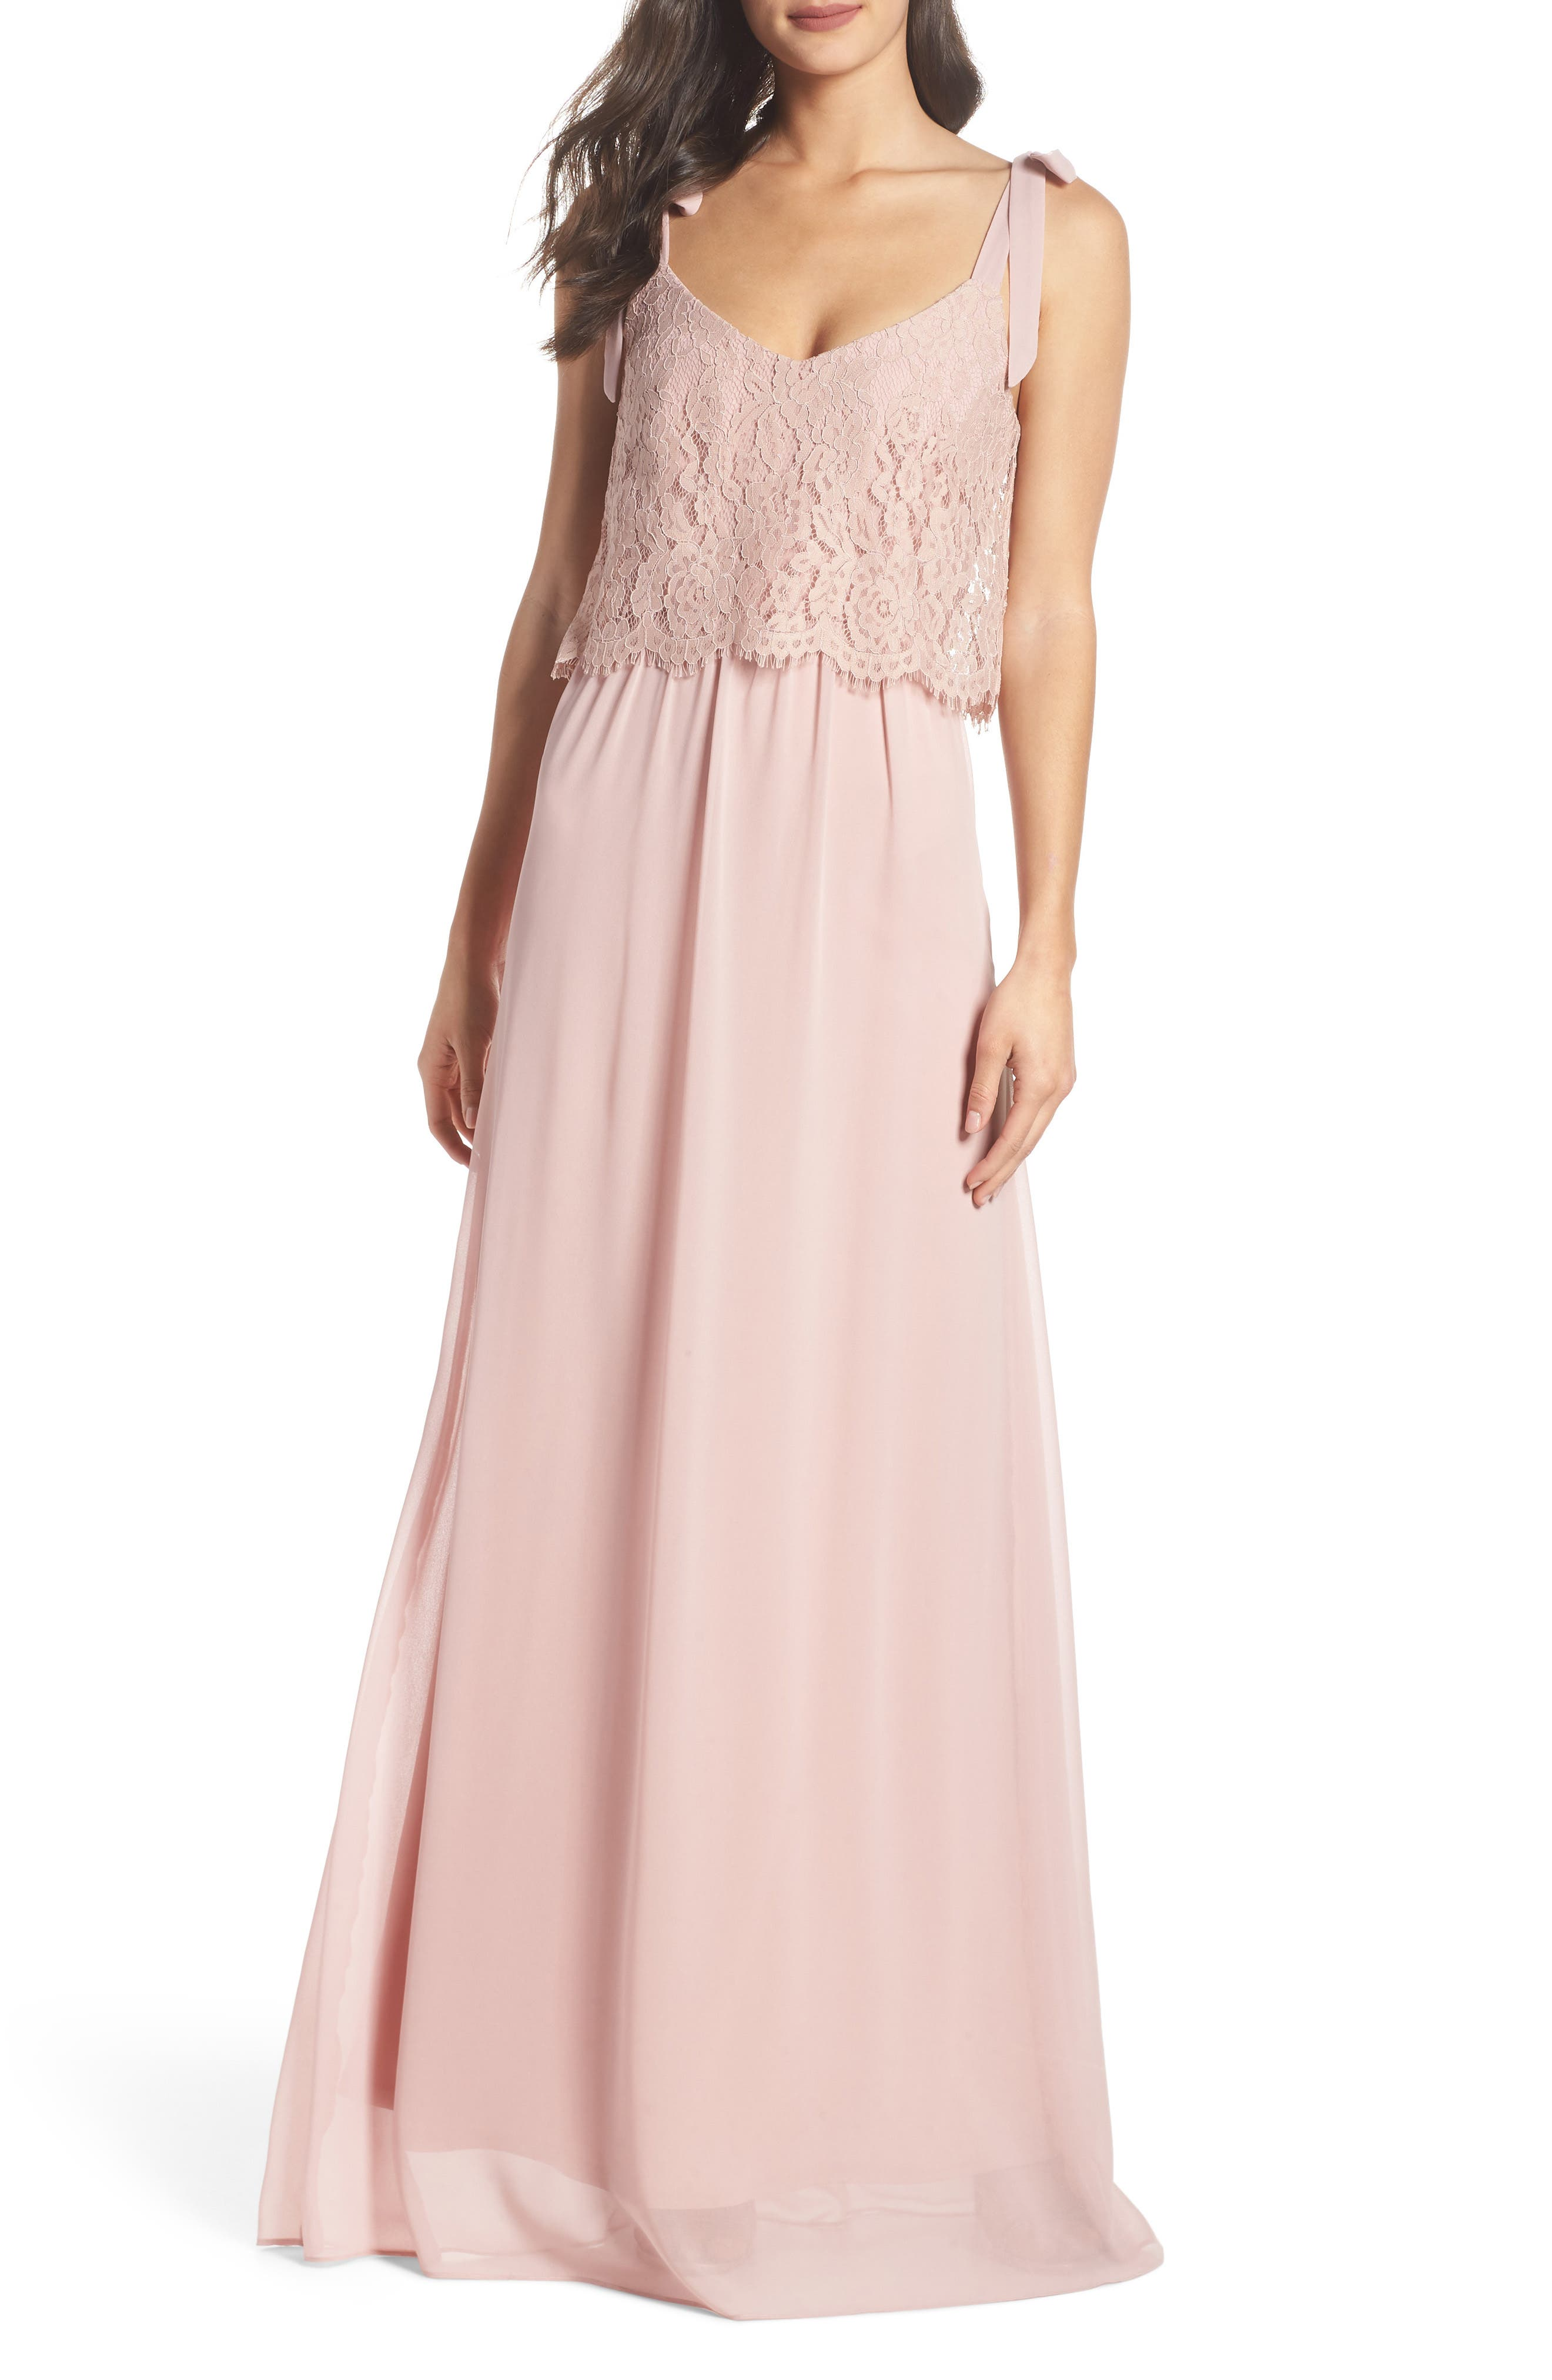 Koko Tie Shoulder Lace Bodice Gown,                             Alternate thumbnail 6, color,                             MAUVE